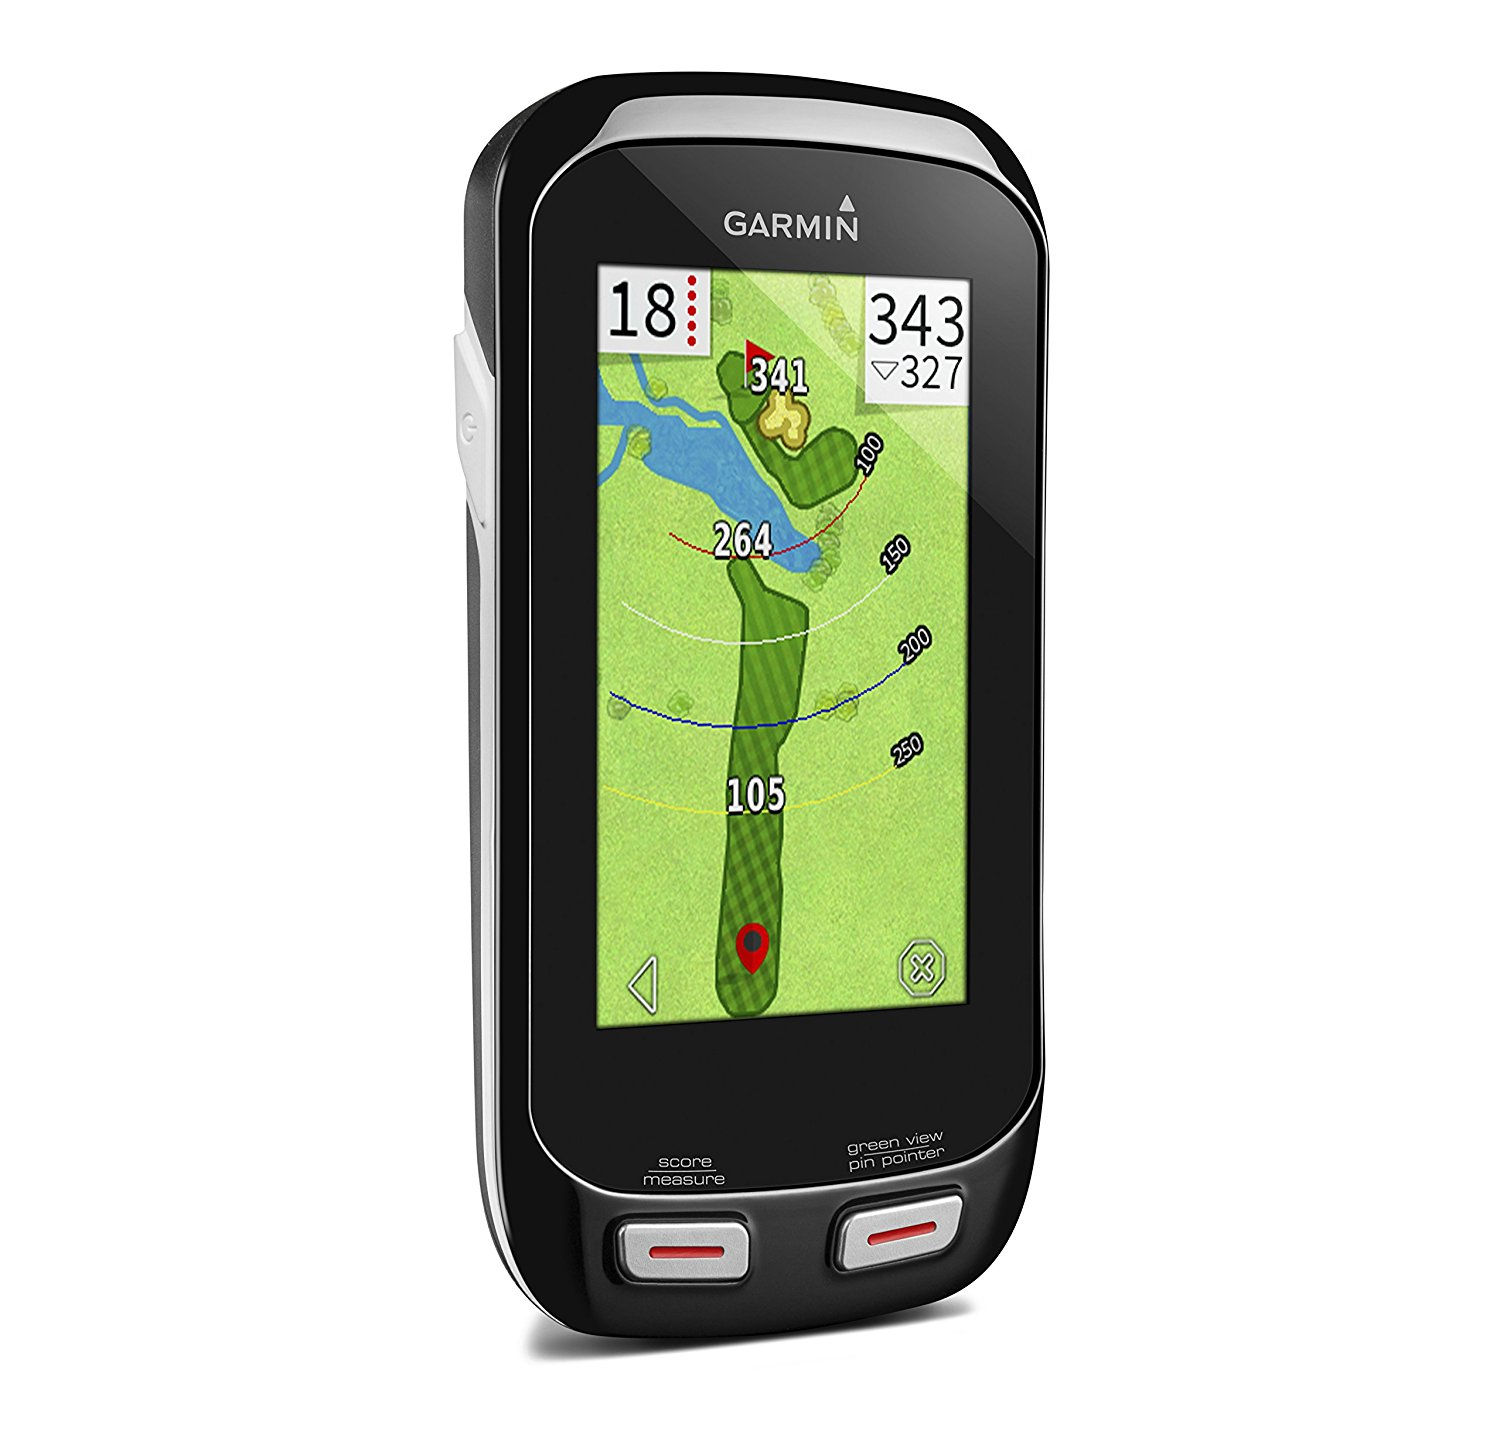 Garmin G8 Golf GPS